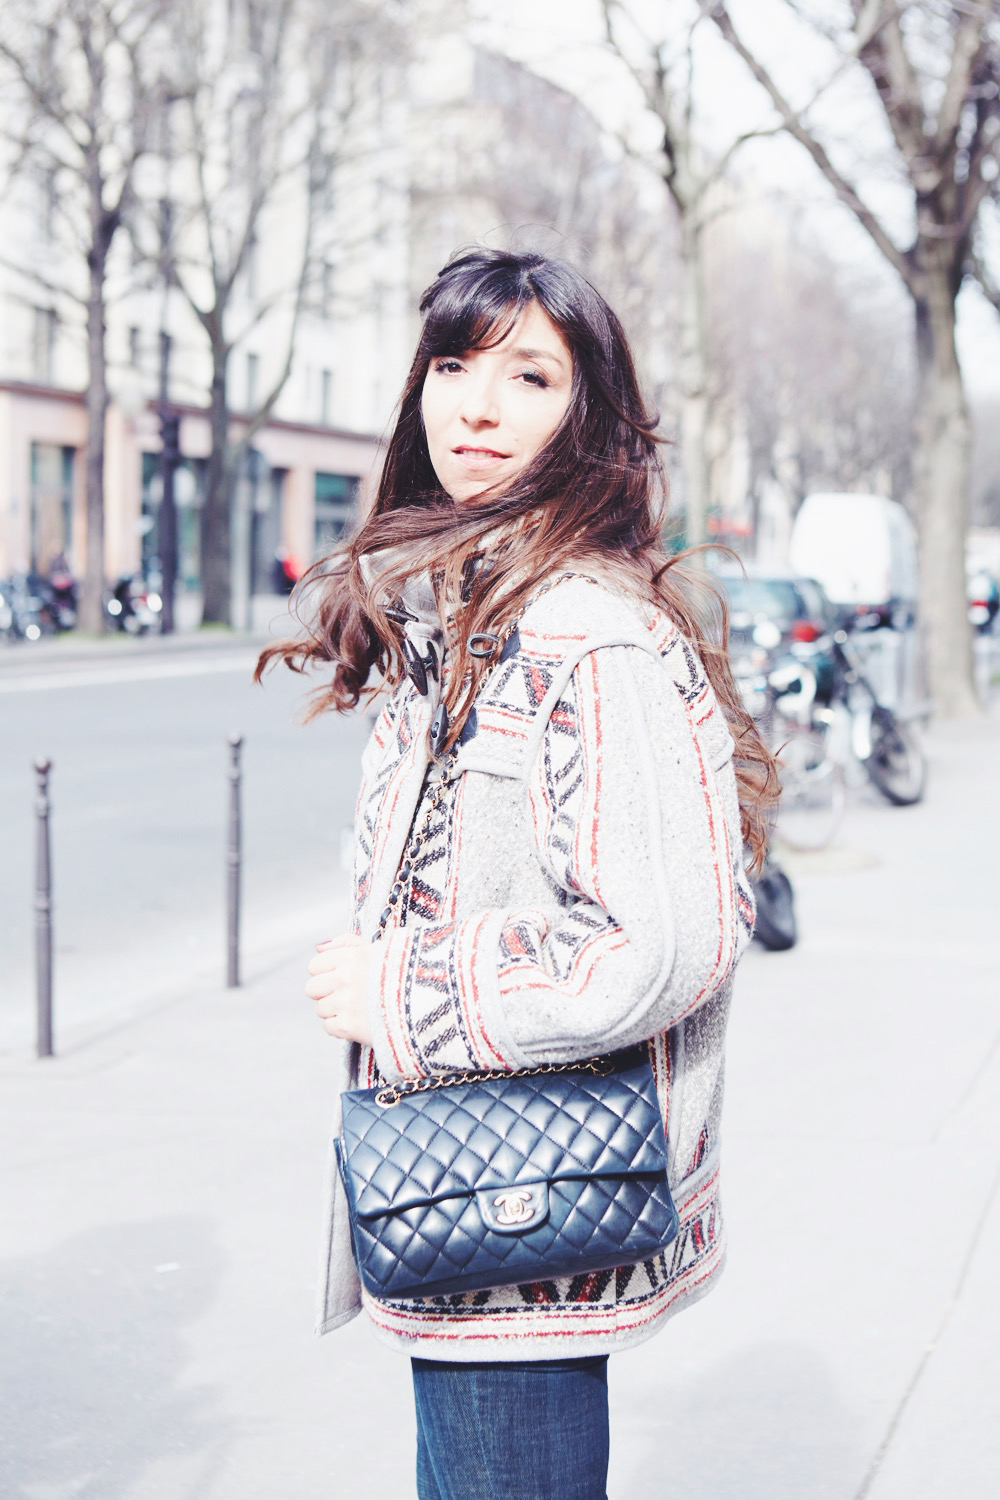 marieluvpink-defile-vanessa-seward-paris-fashion-week-7